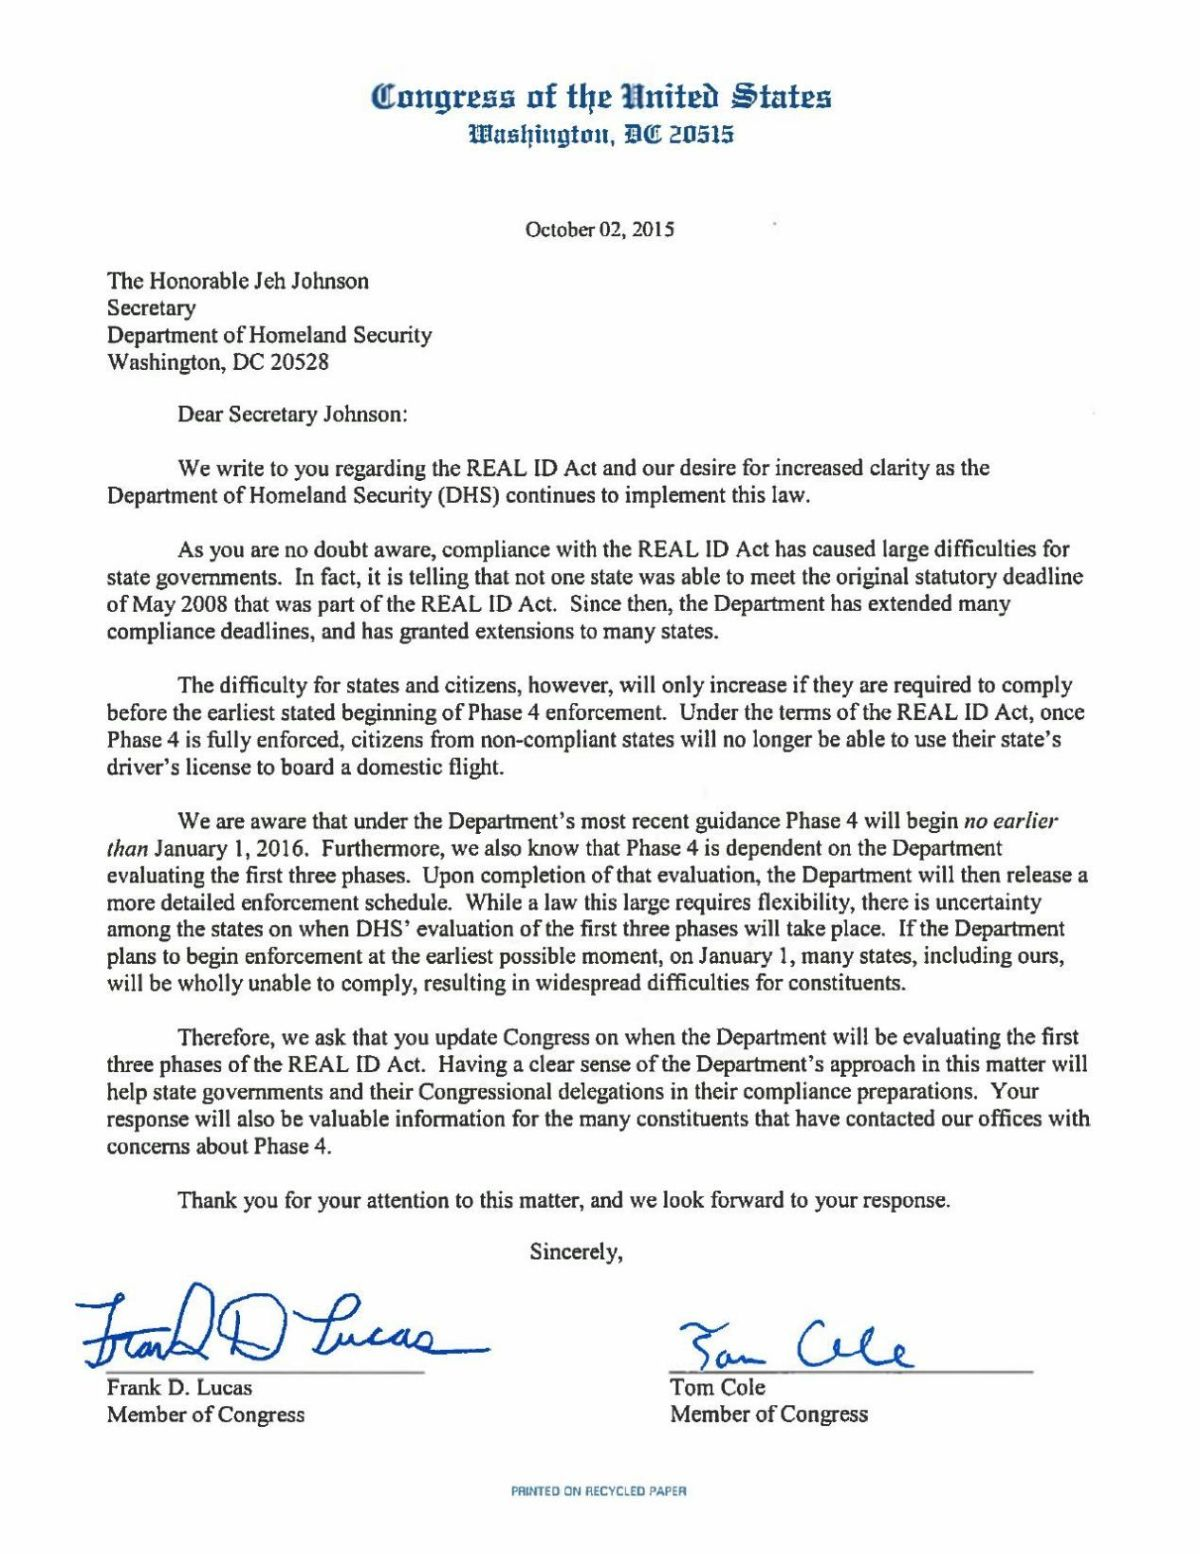 Real ID Act Letter from Oklahoma congressmen to Homeland